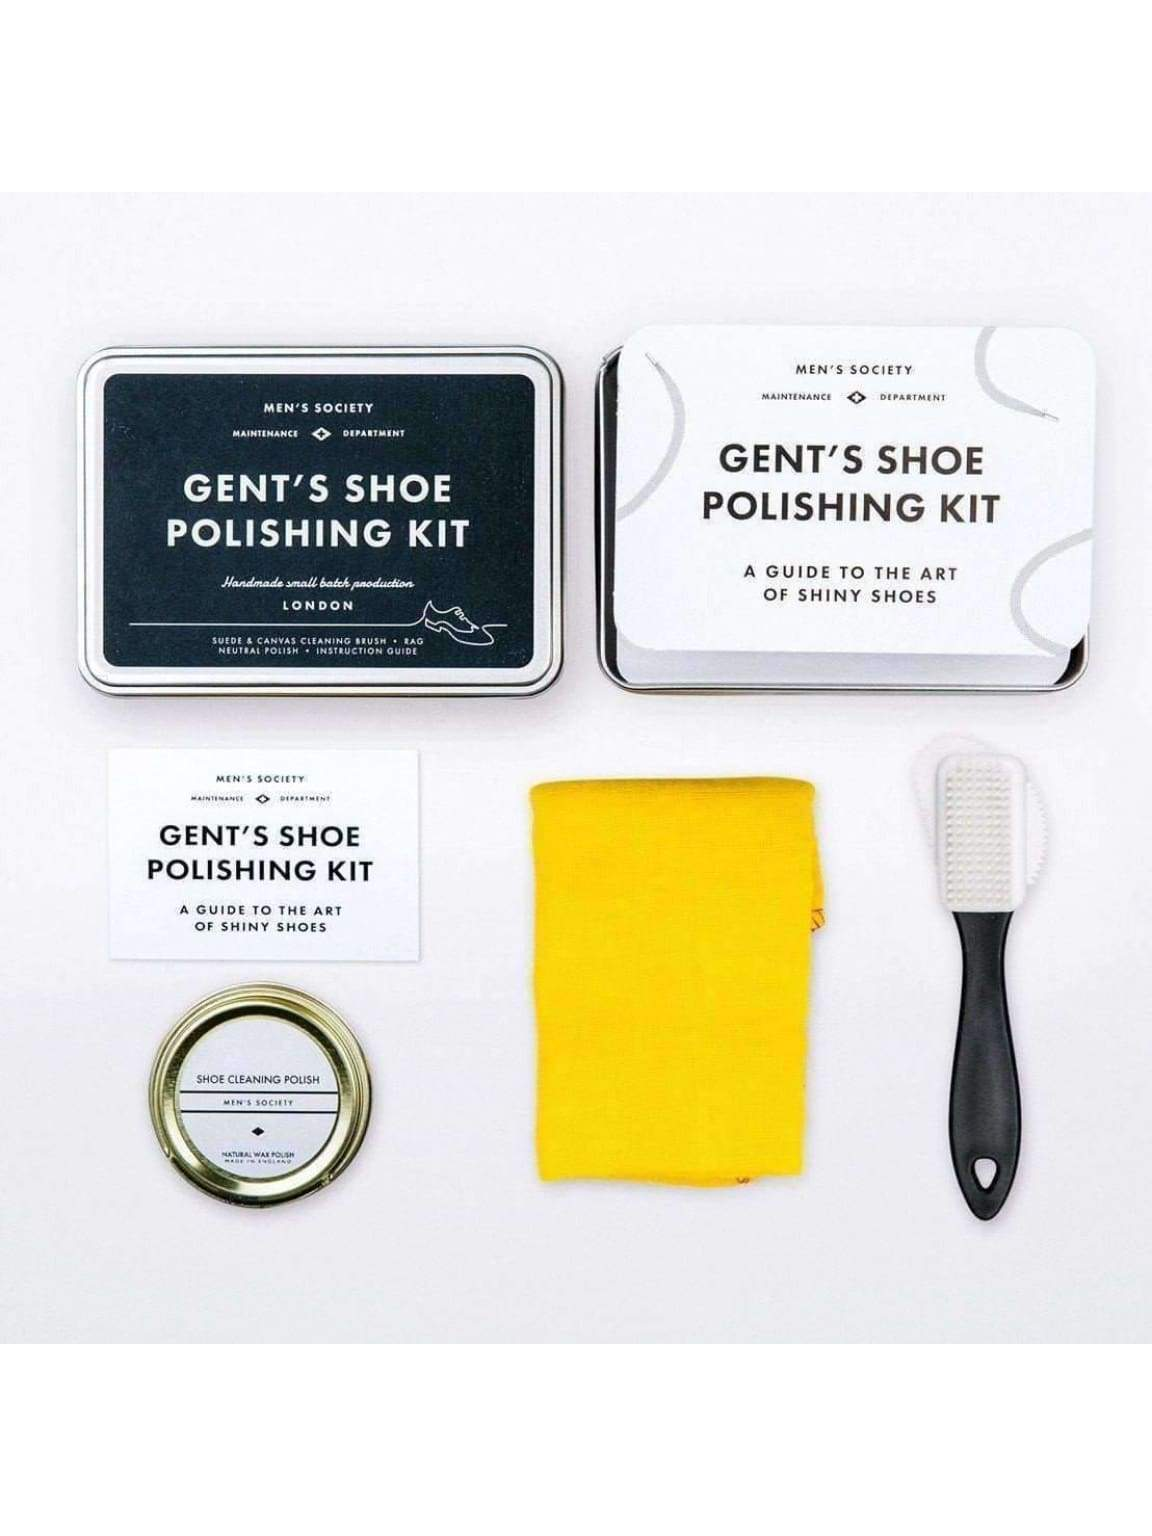 Gents Shoe Polishing Kit - Personal care